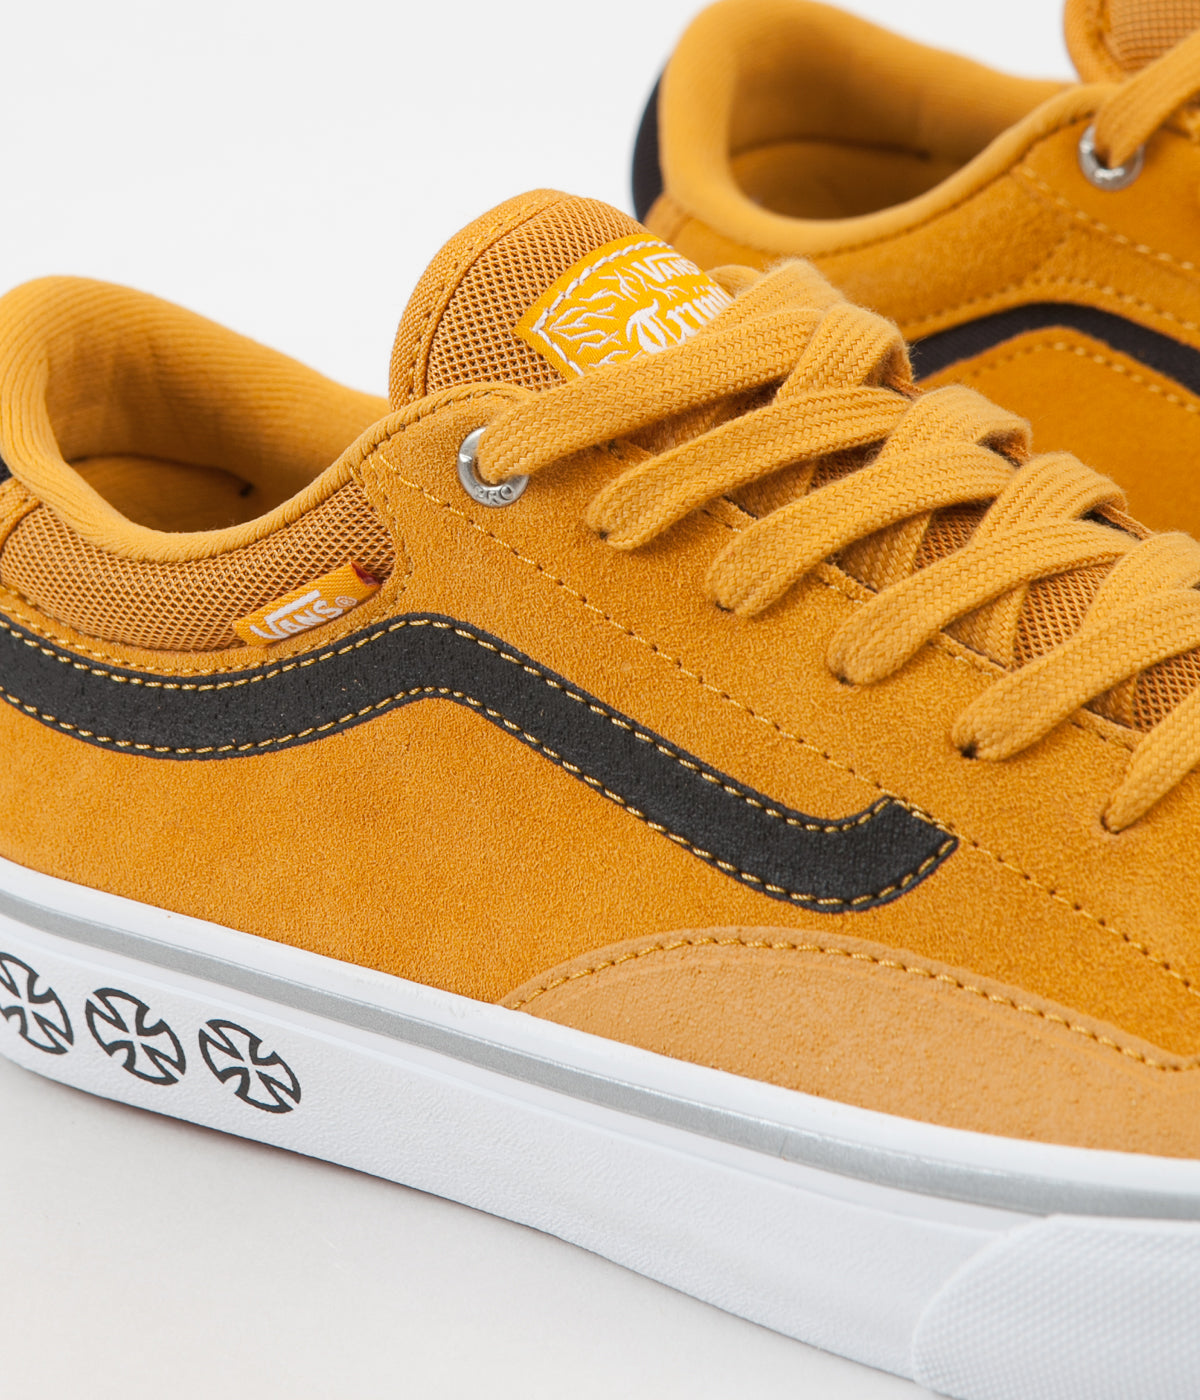 Tnt X Independent Vans Prototype Advanced Shoes SunflowerFlatspot 67Yfgyb